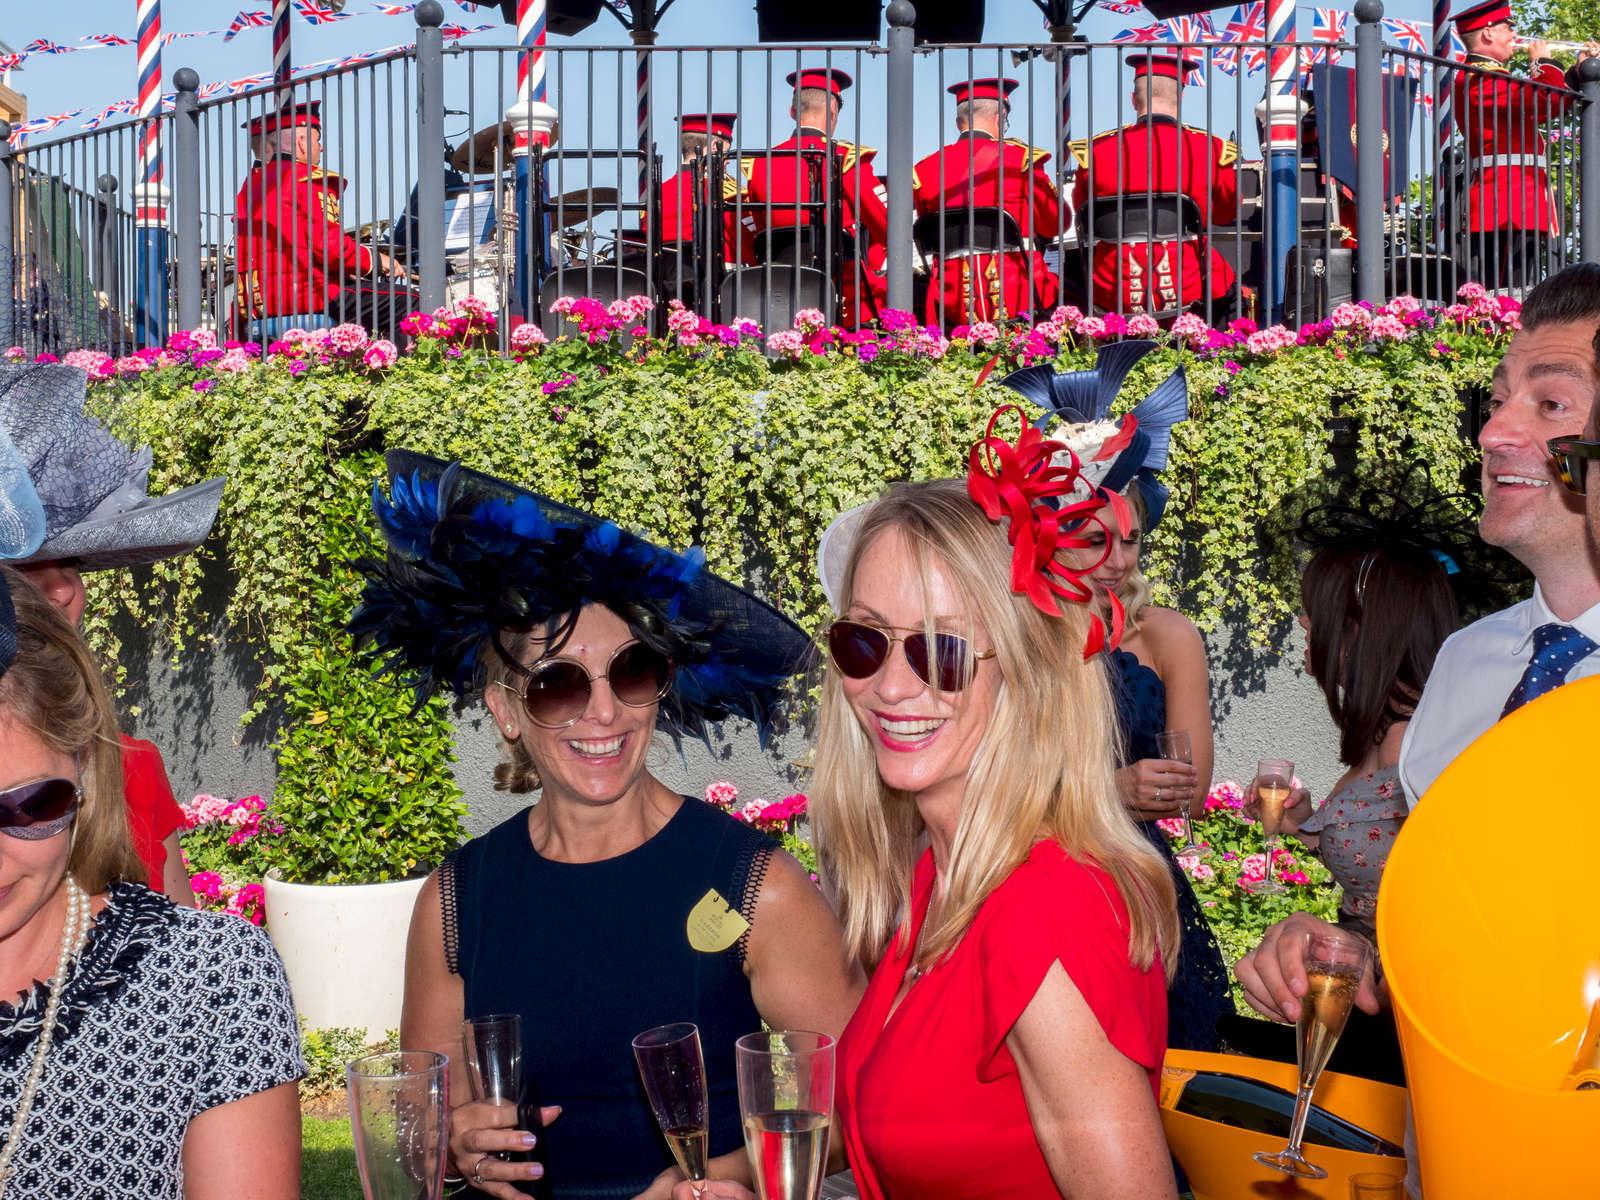 Visitors to the Veuve Clicquot bar located next to the bandstand at Royal Ascot.One of Britain's most well-known racecourses, Ascot holds a special week of races in June each year called Royal Ascot, attended by The Queen. The week has become Britain's most popular race meeting, welcoming around 300,000 visitors over five days, all dressed up in their finest clothes and hats.